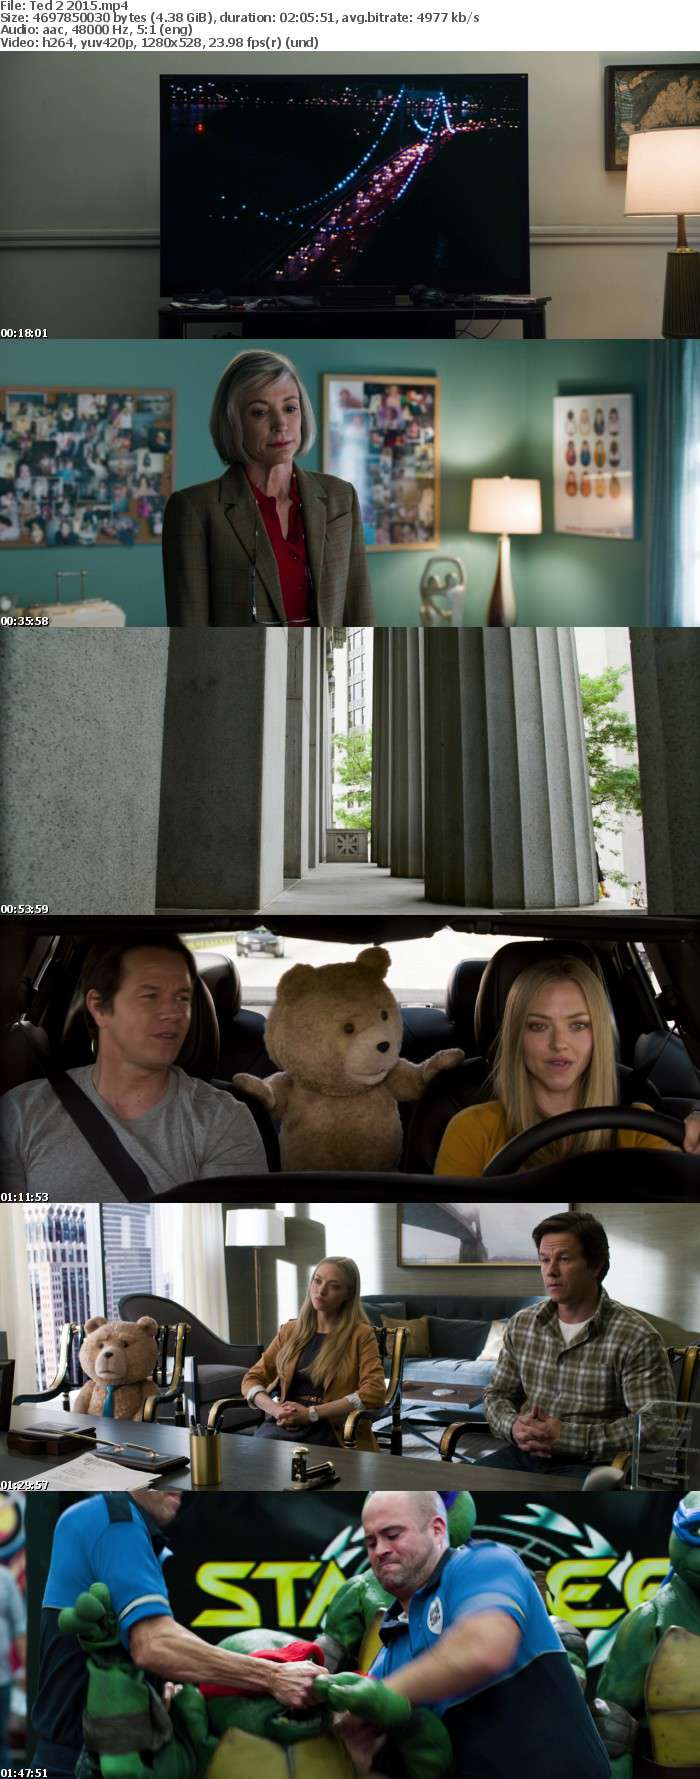 Ted 2 2015 Unrated Extended BRRIP 720p x264 AAC INFERNO